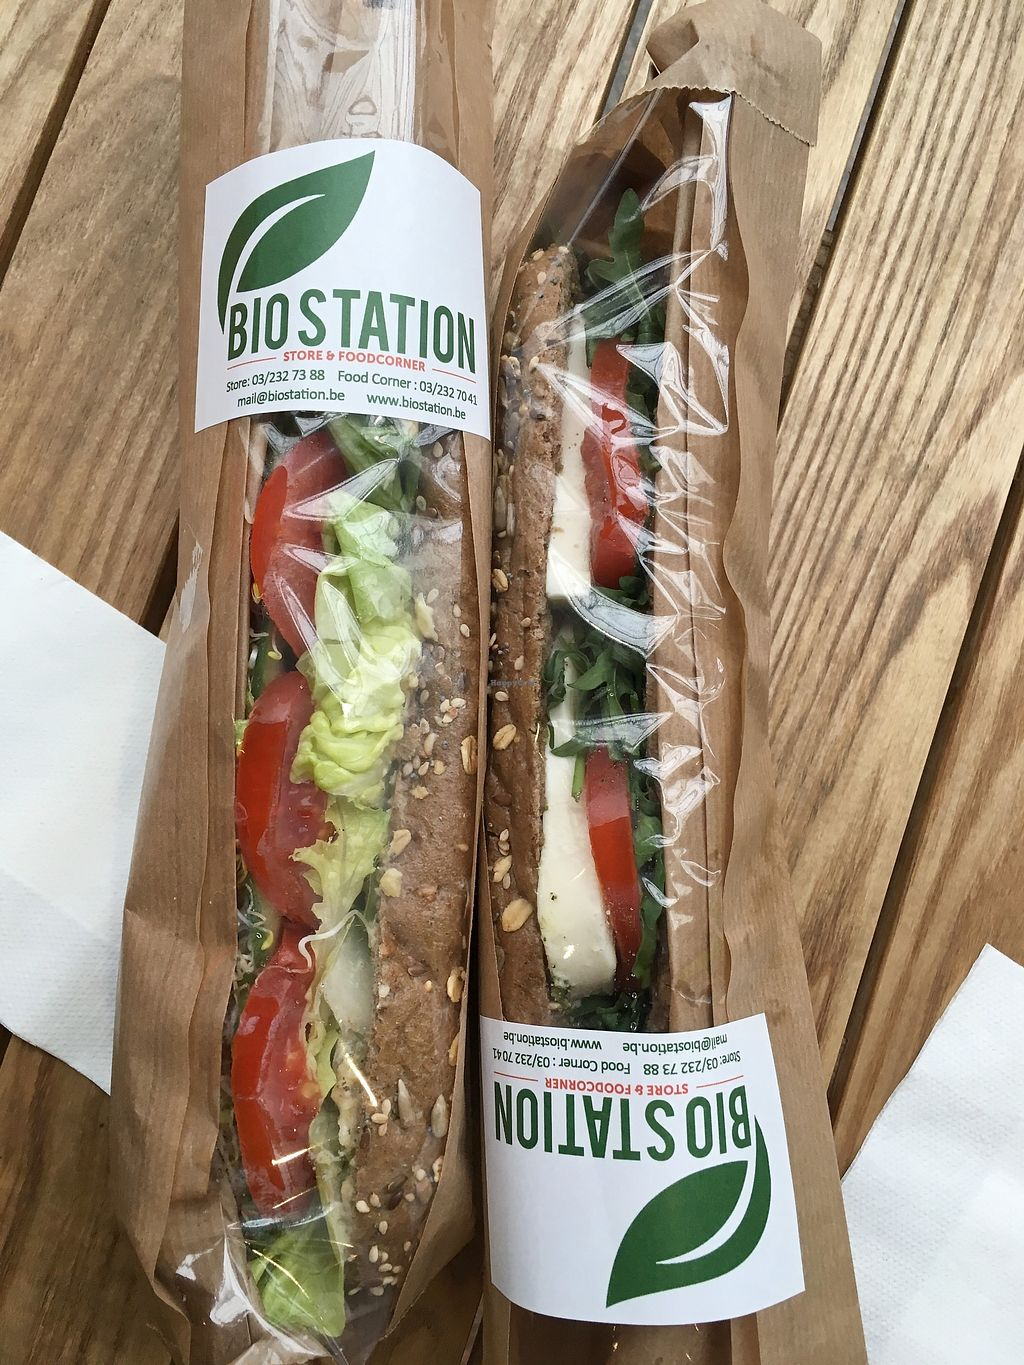 """Photo of Bio Station  by <a href=""""/members/profile/Alina%26Deian"""">Alina&Deian</a> <br/>Tasty sandwiches <br/> December 5, 2017  - <a href='/contact/abuse/image/65596/332561'>Report</a>"""